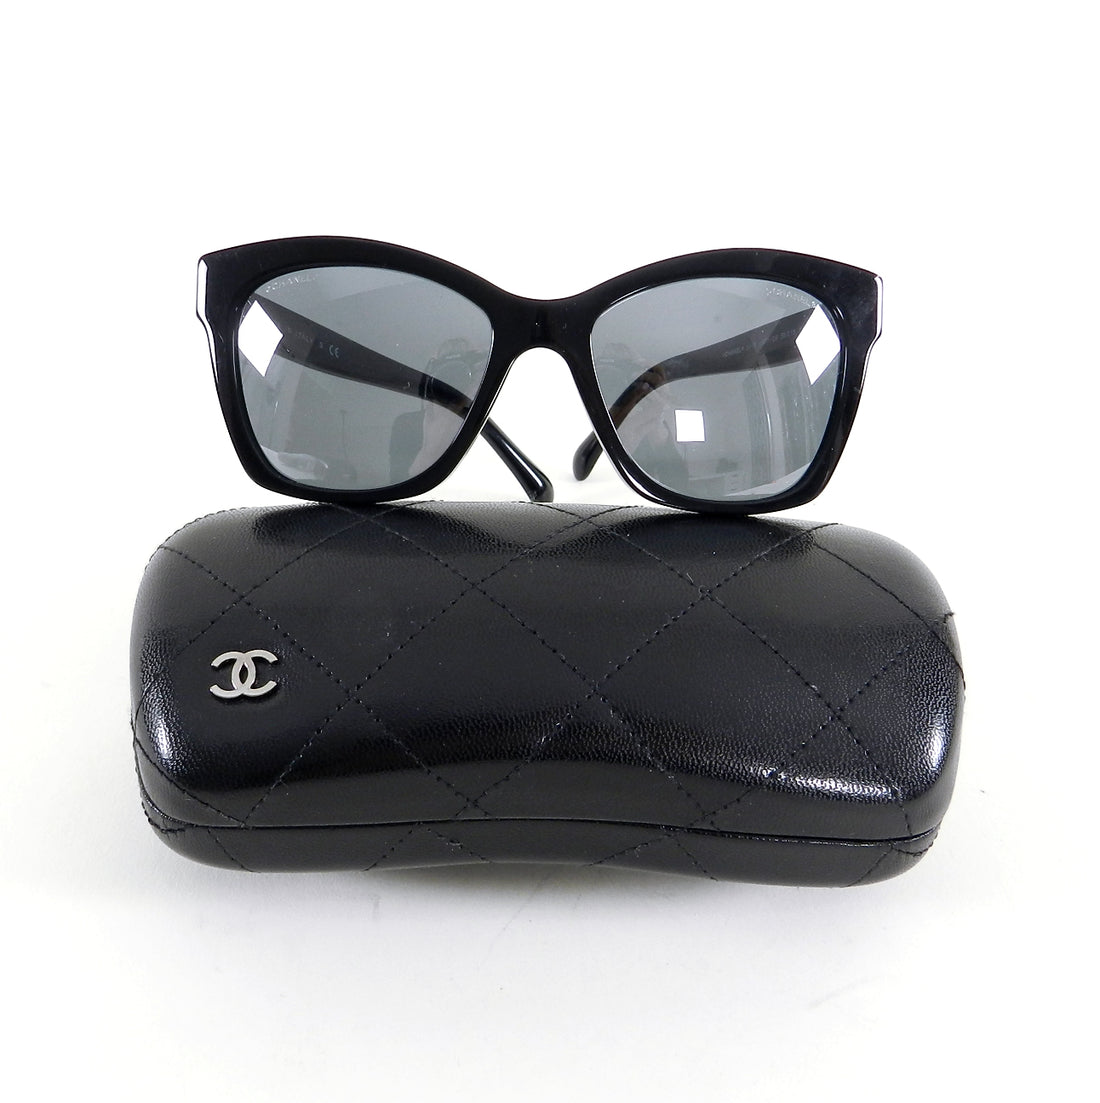 Chanel Le Boy 5313 Black Sunglasses with Case